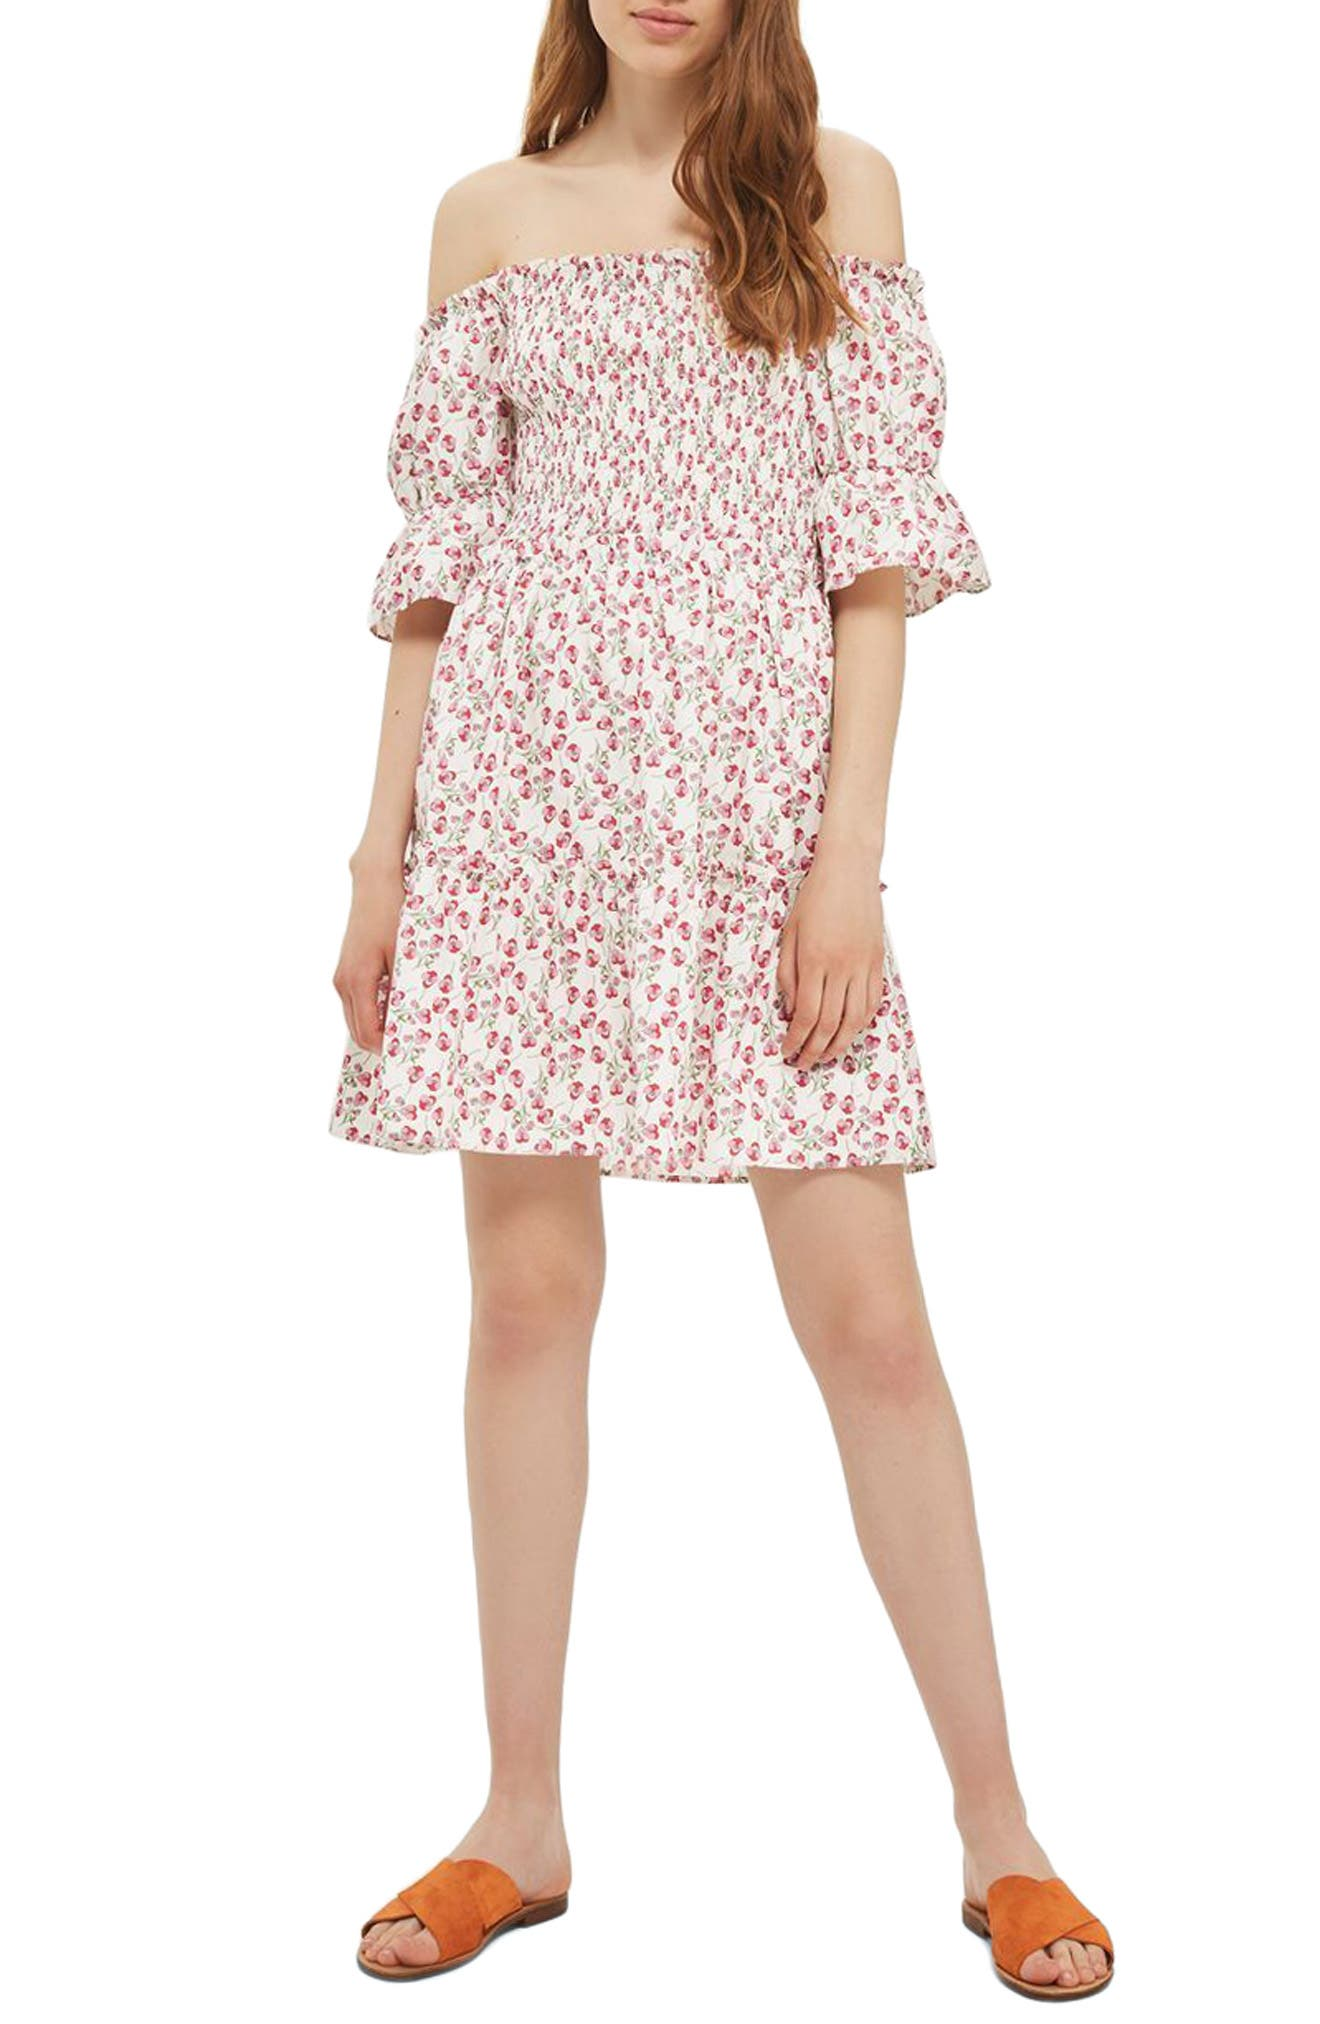 Topshop Liberty Print Off the Shoulder Dress